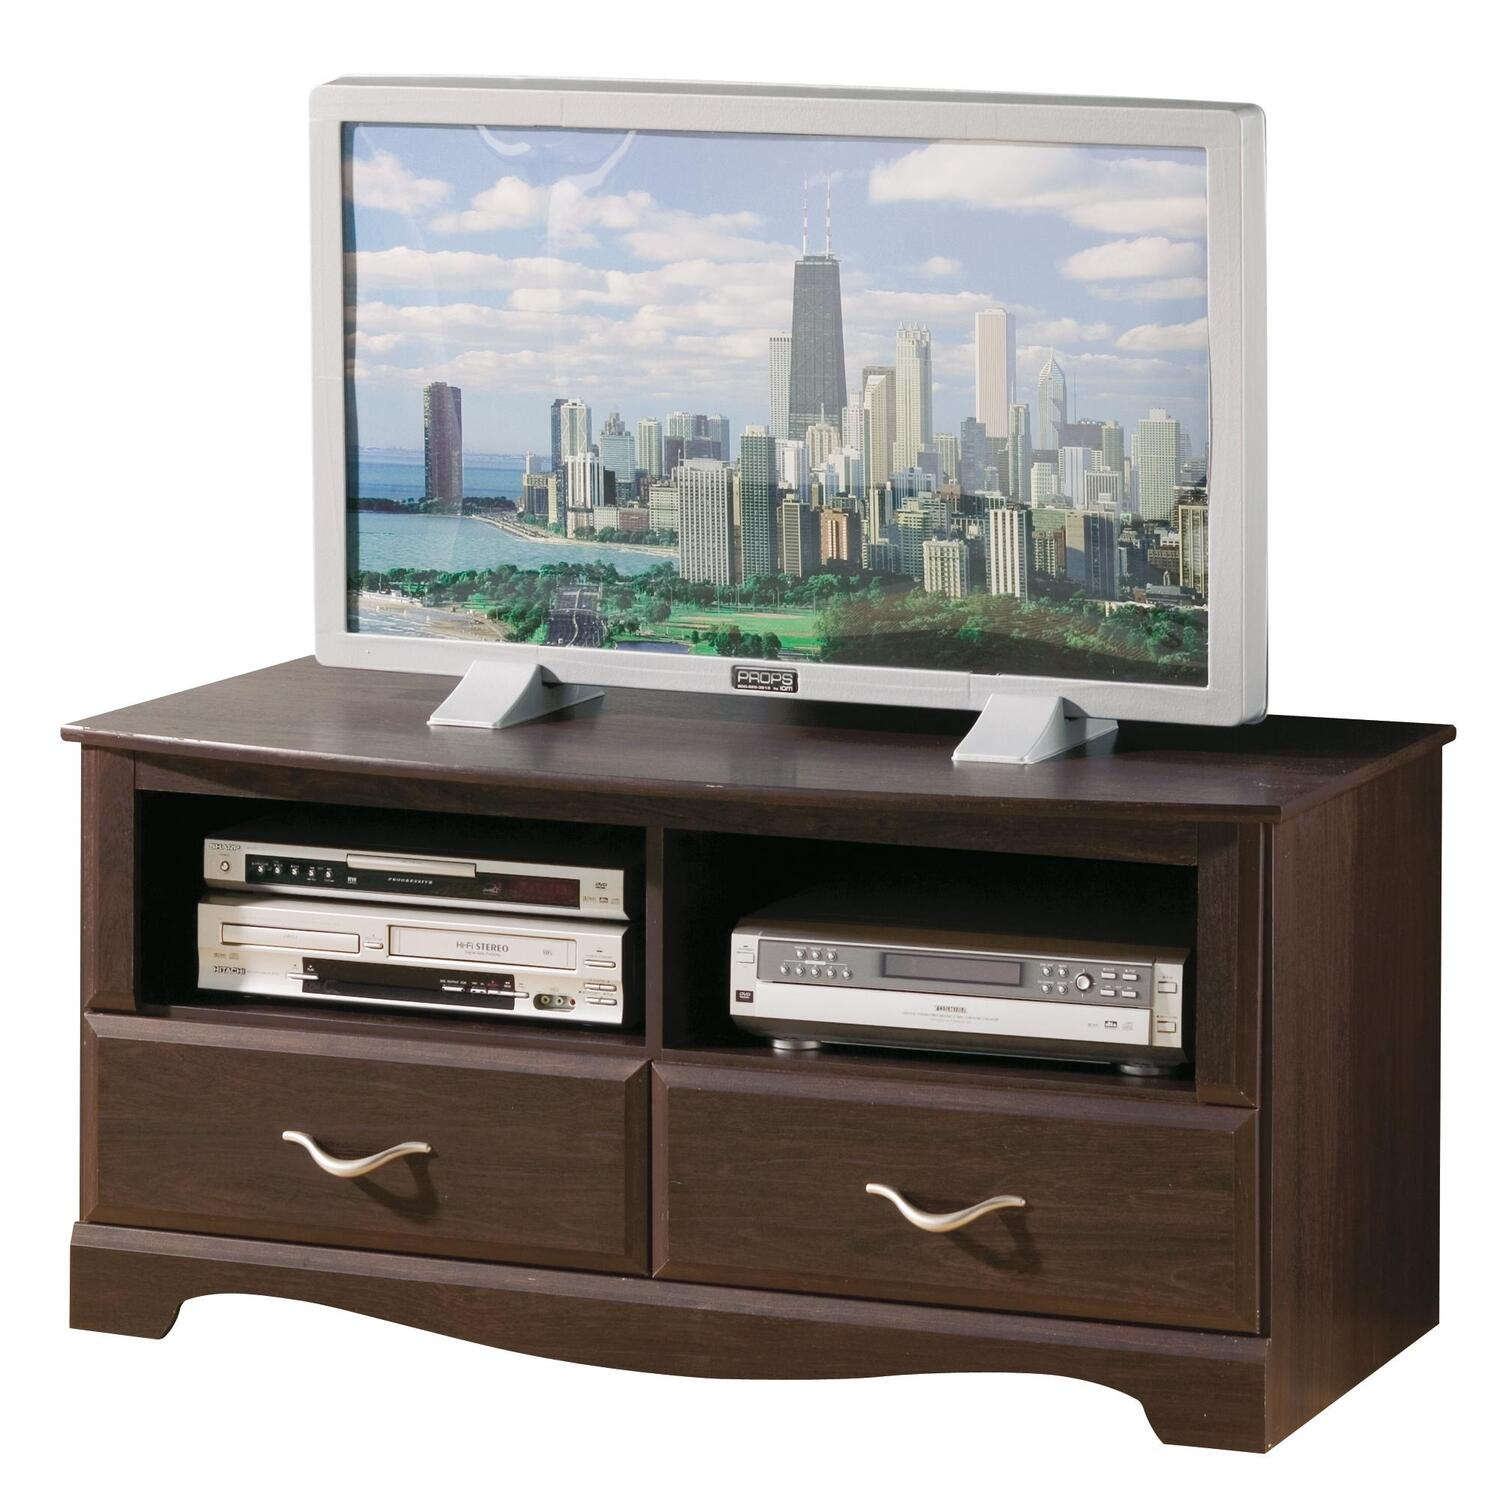 south shore lounge 50 tv stand by oj commerce 4339661. Black Bedroom Furniture Sets. Home Design Ideas